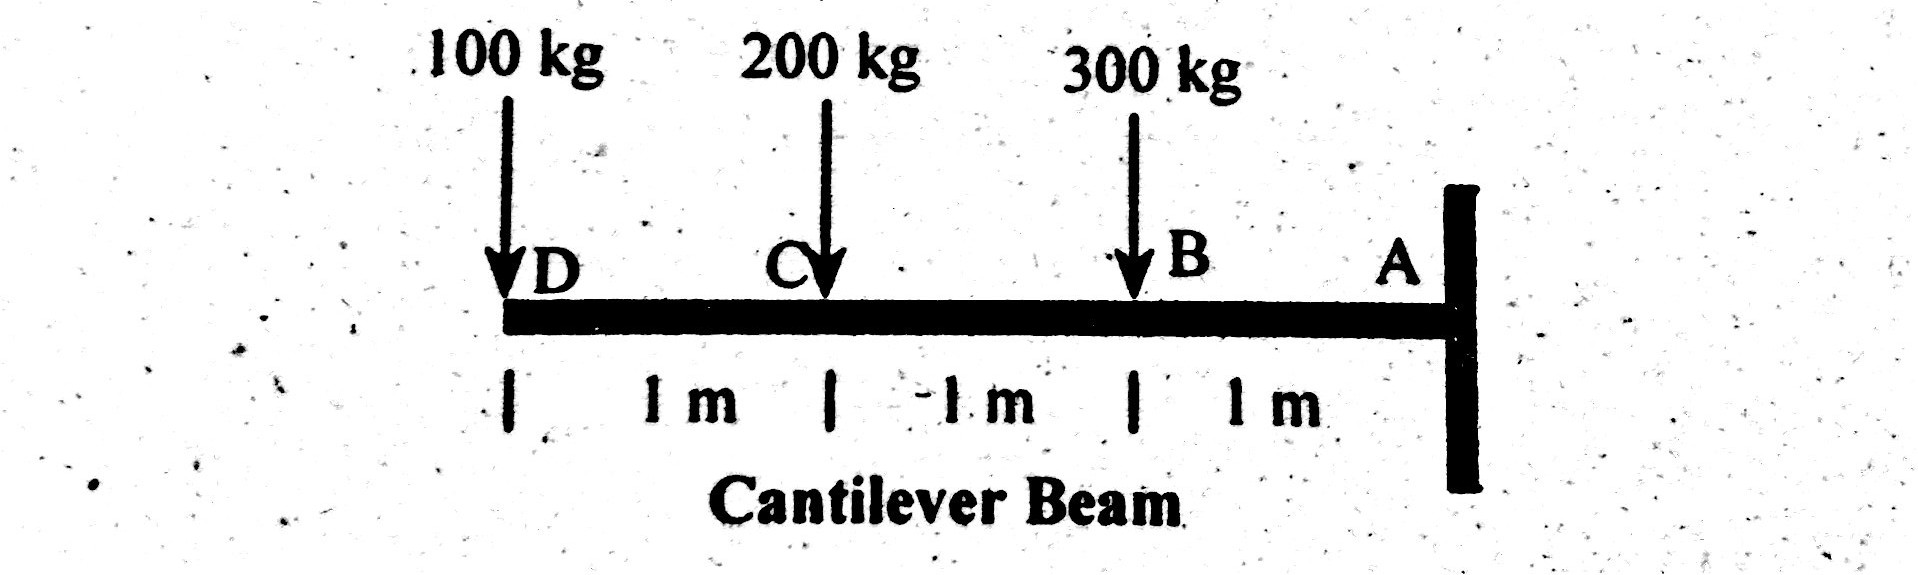 Shear Force Bending Moment Diagram Of Cantilever Beam Examples Sfd Bmd